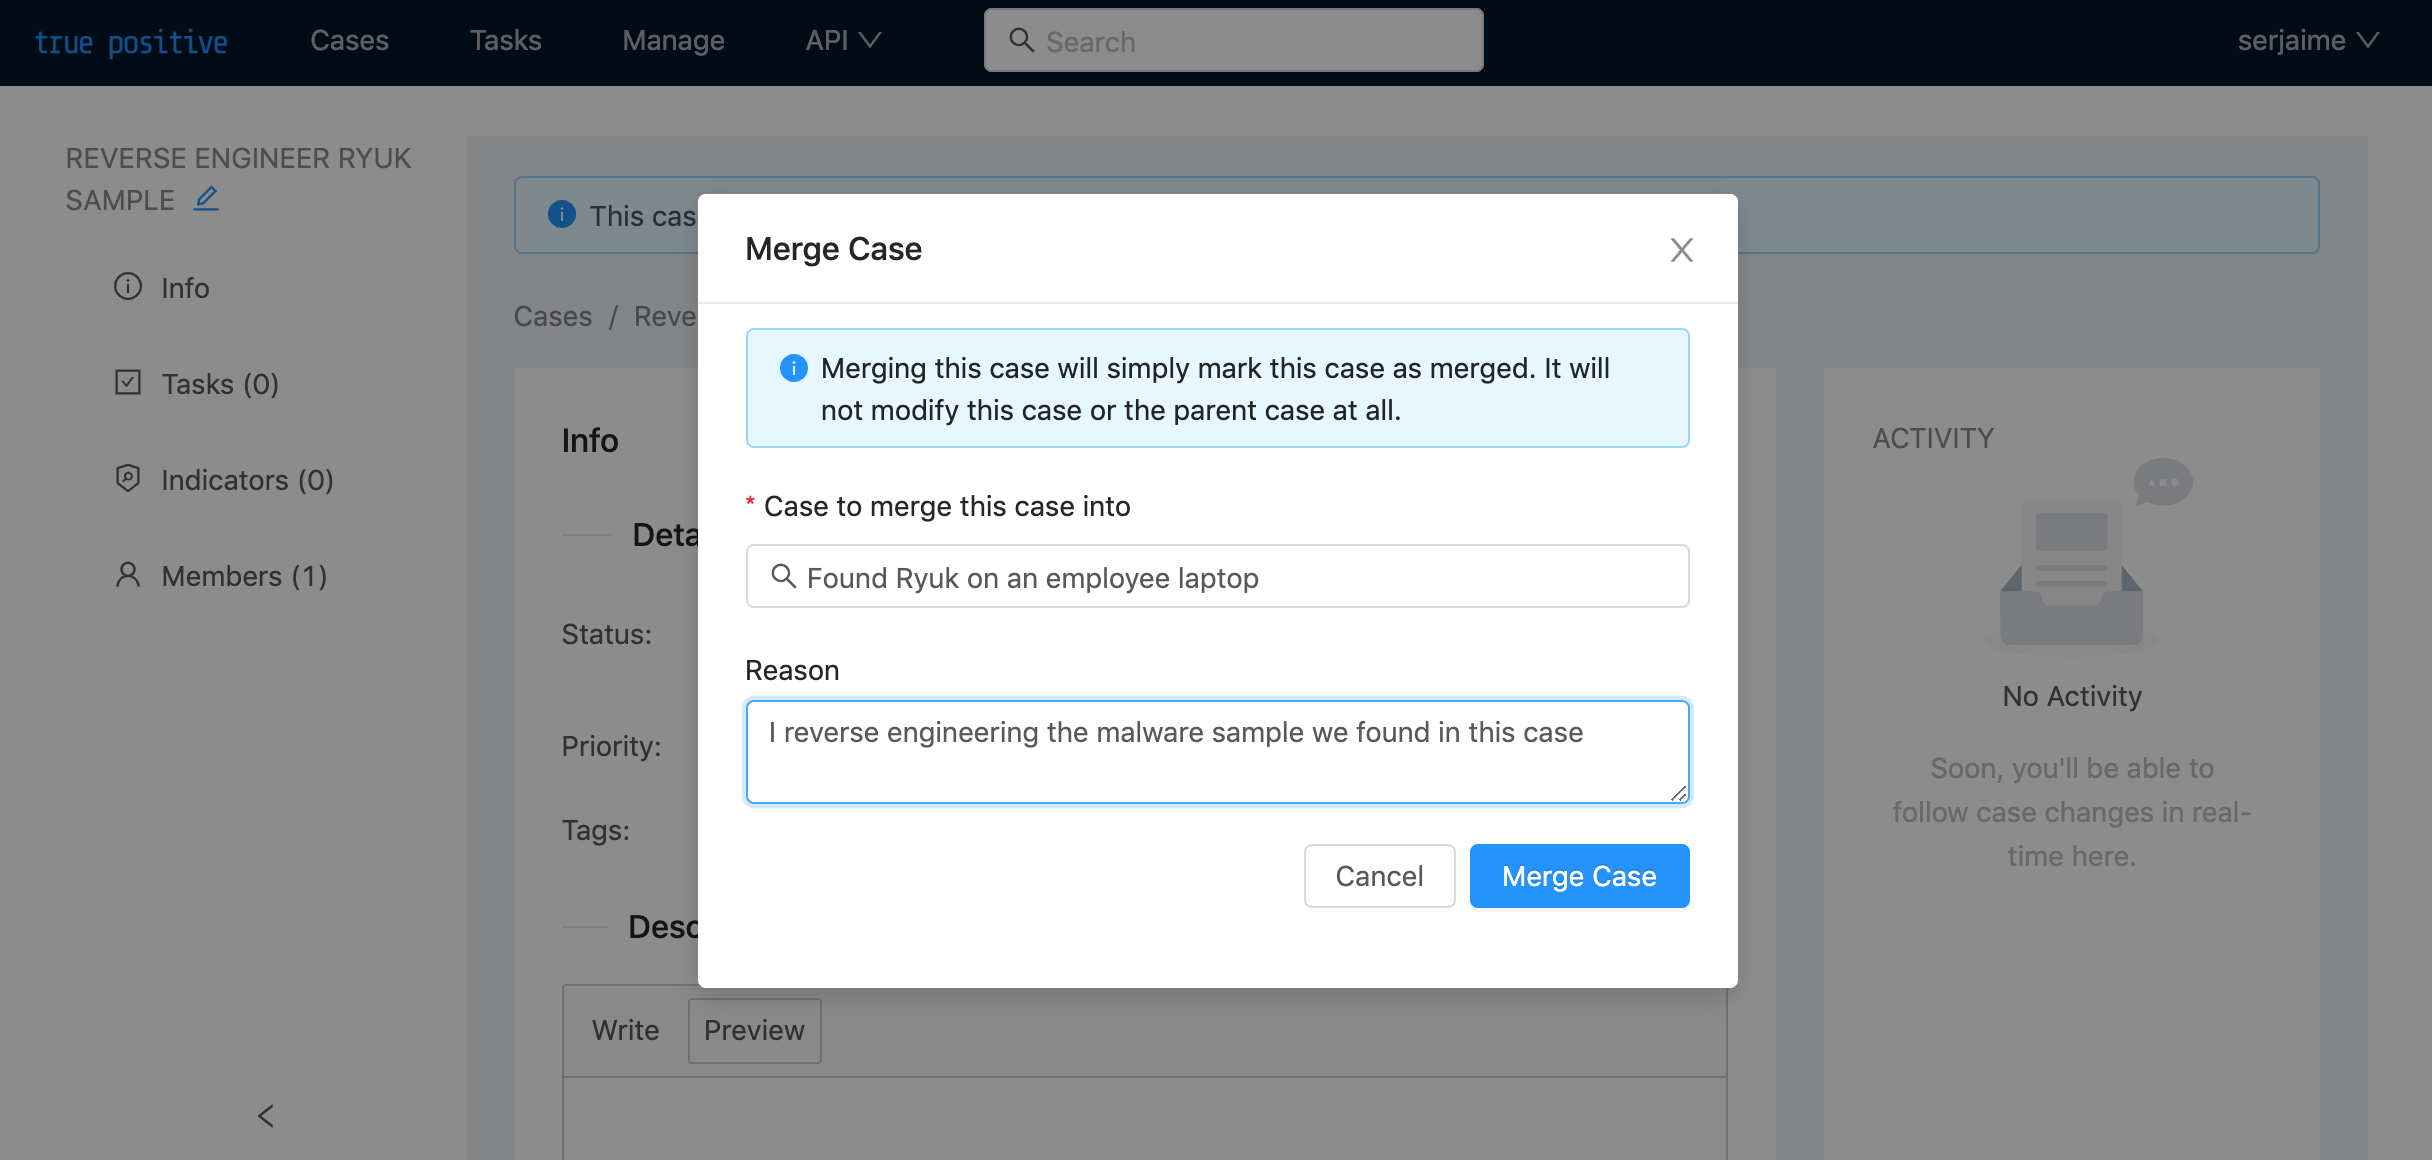 Form to fill out to merge a case